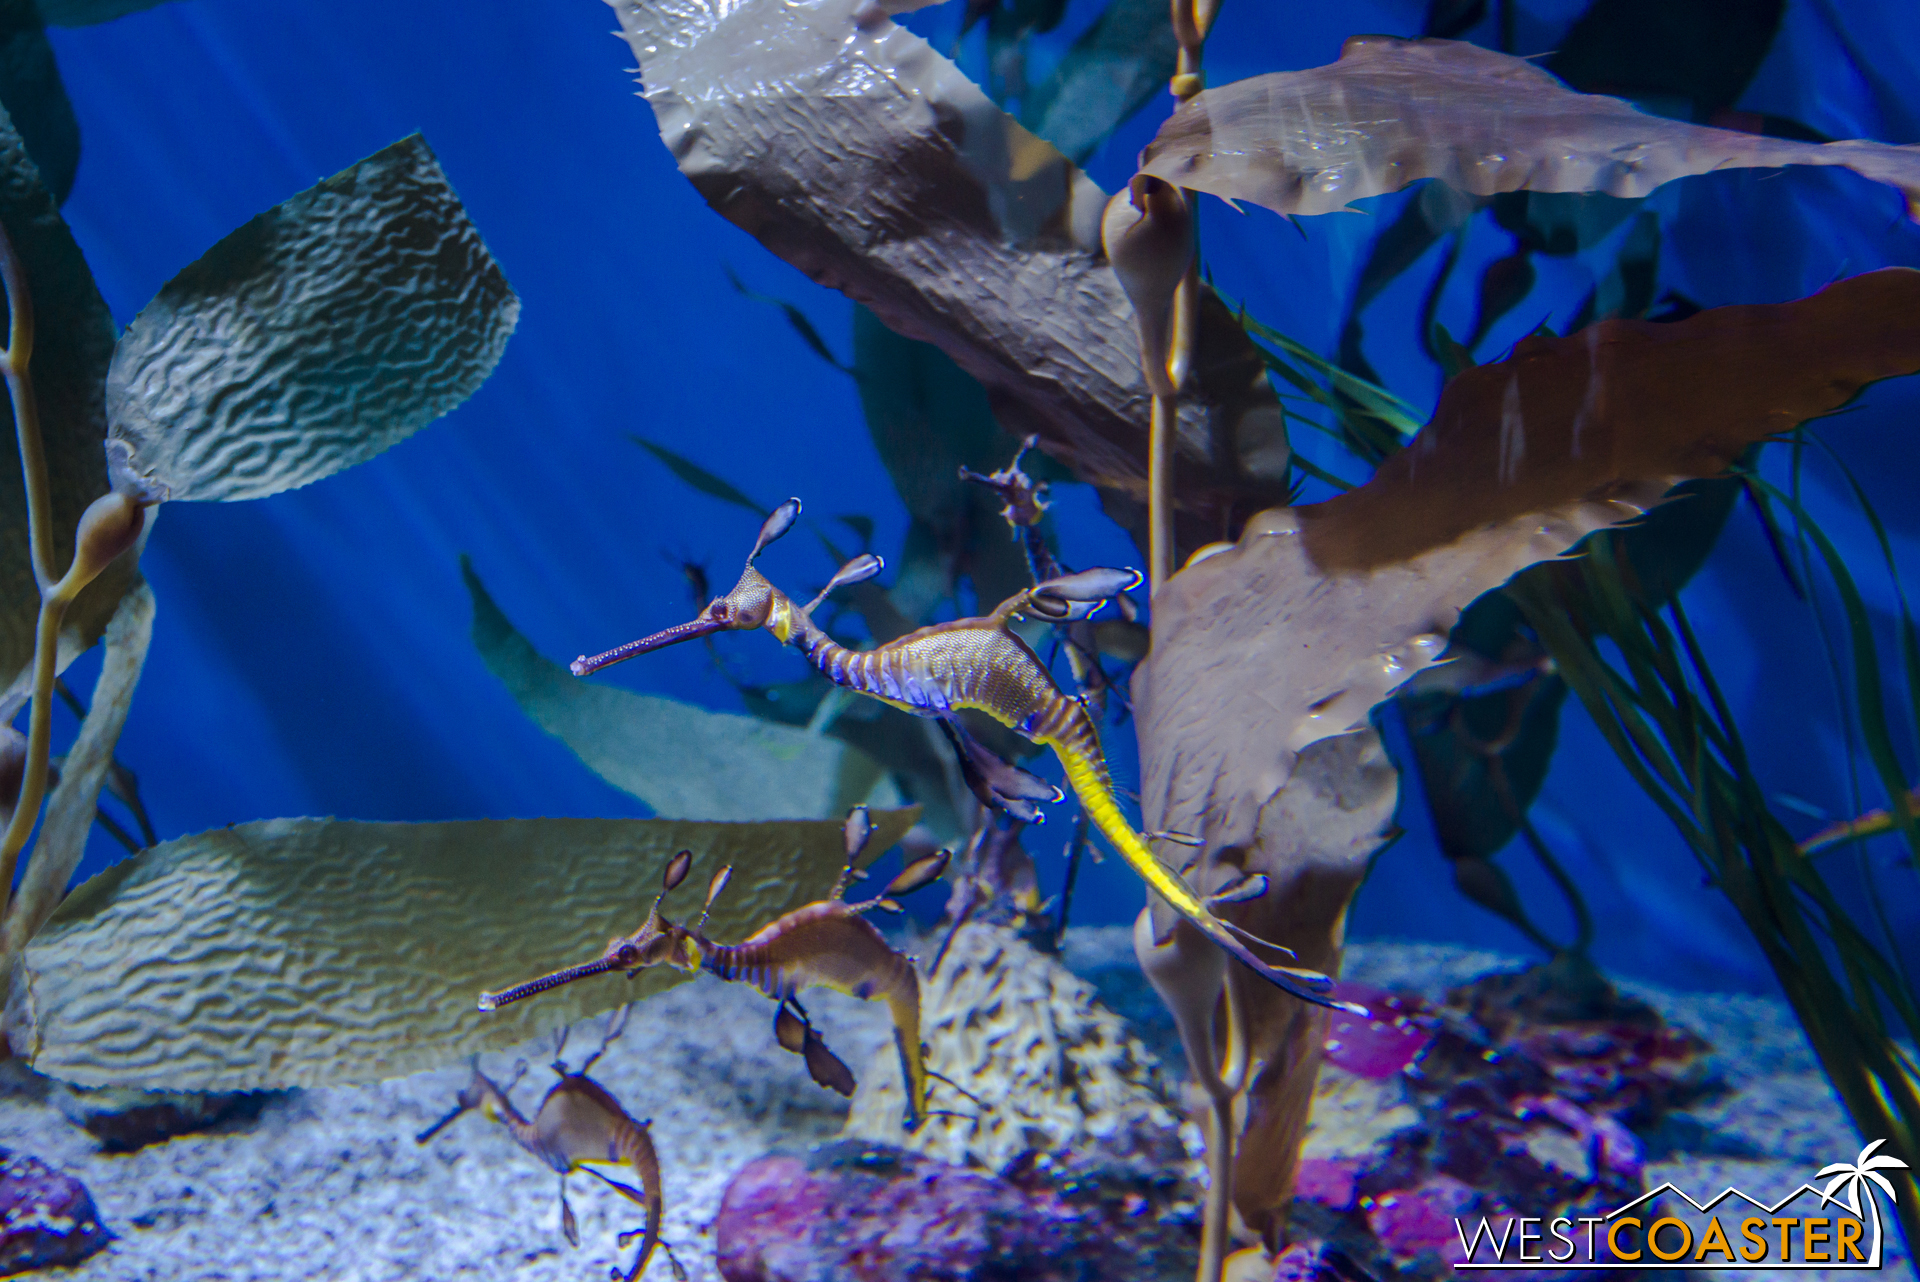 A Weedy Seadragon floats around in a tank in the Tropical Pacific area.